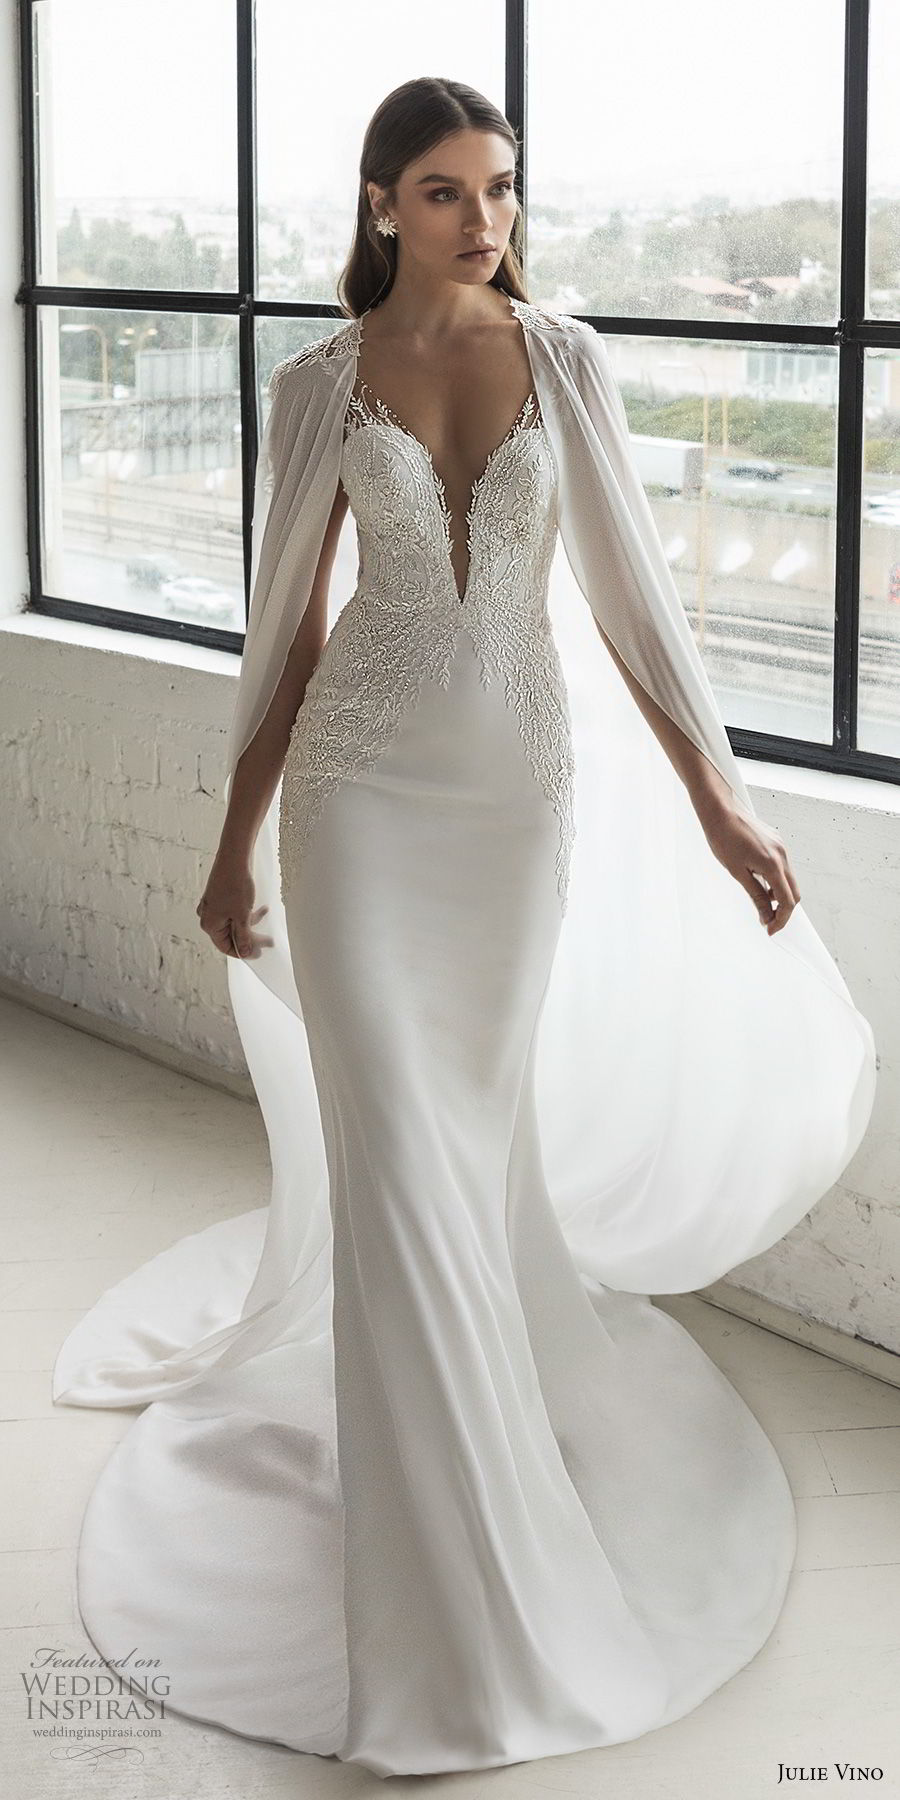 julie vino 2019 romanzo bridal sleeveless deep plunging sweetheart neckline heavily embellished bodice romantic fit and flare wedding dress with cape low v back chapel train (8) mv